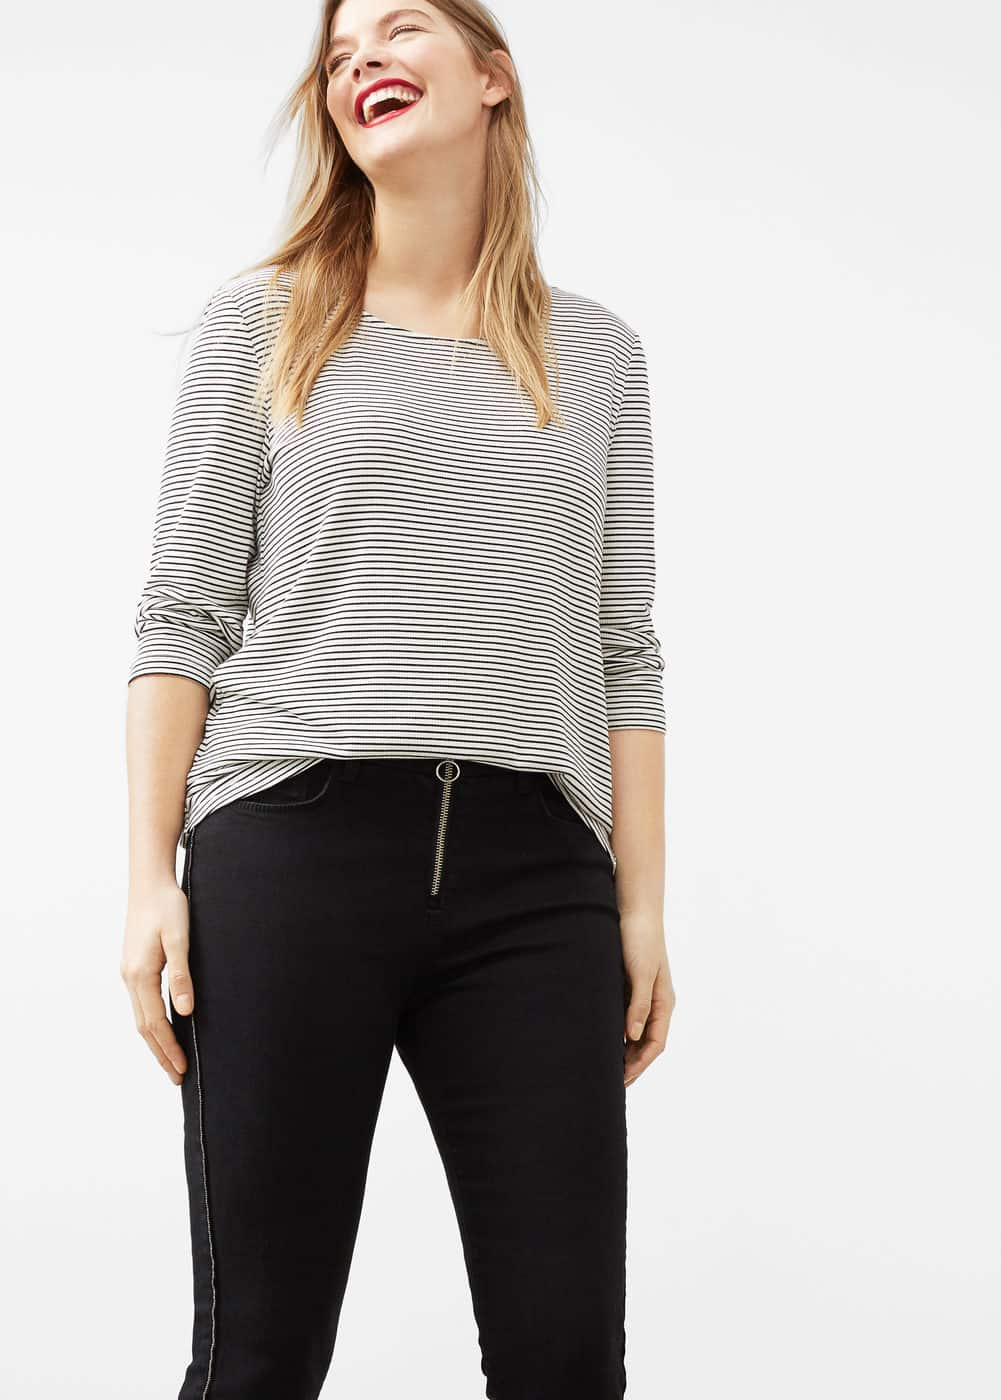 Super slim-fit carlota jeans | VIOLETA BY MANGO